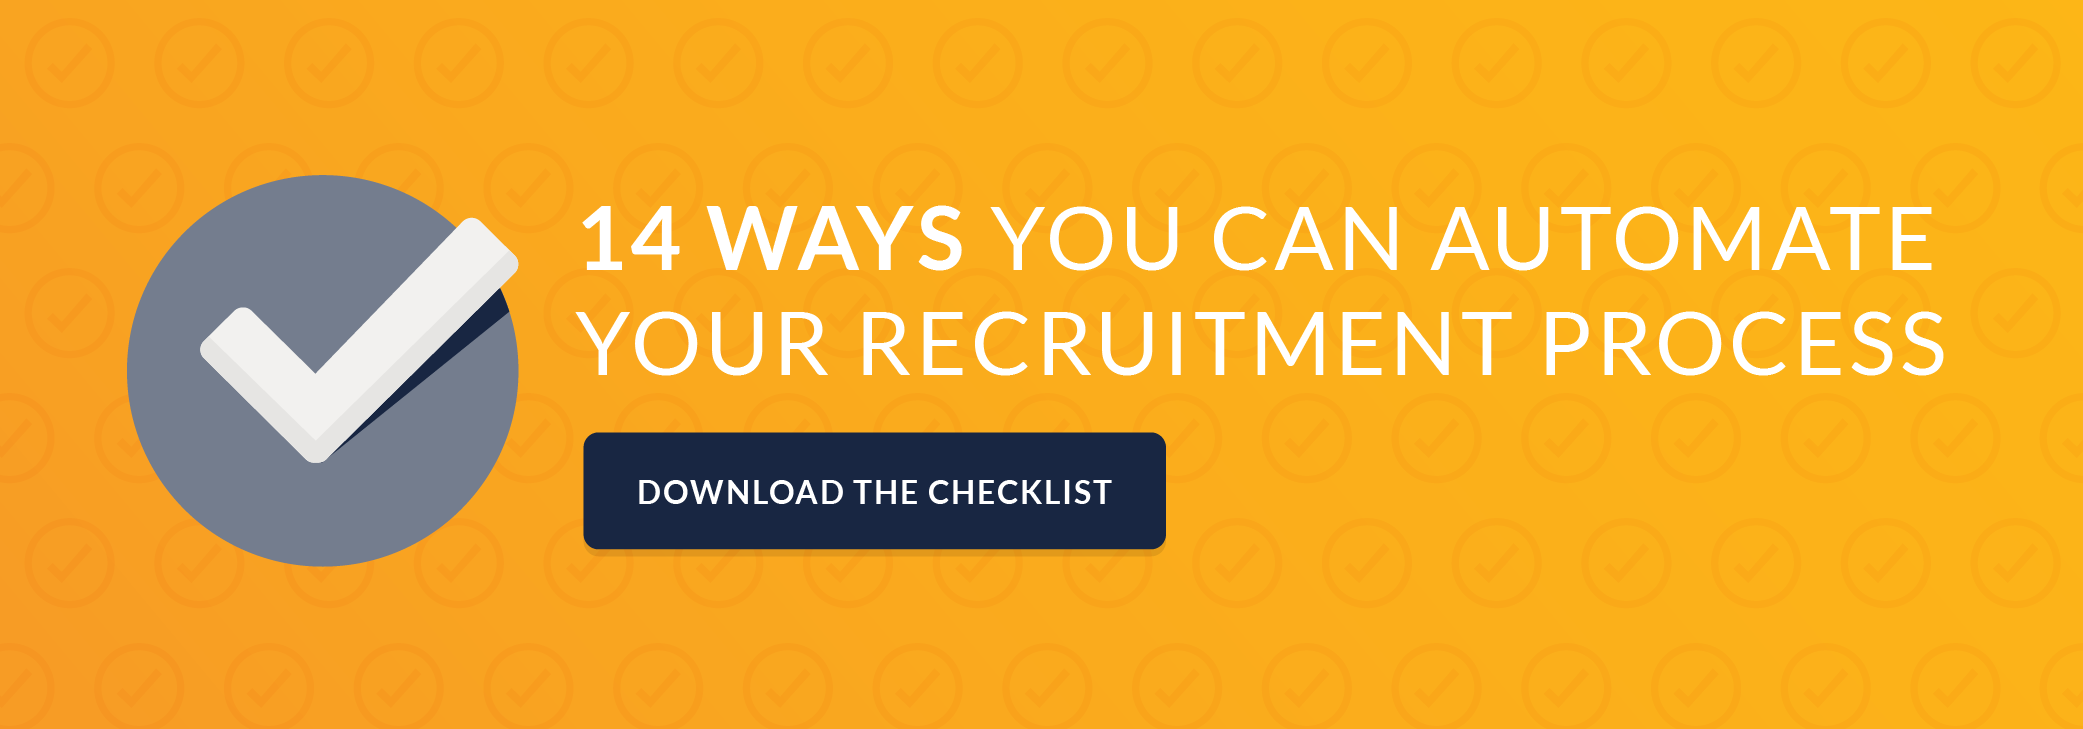 Guide: 14 Ways to Automate Your Recruitment Process